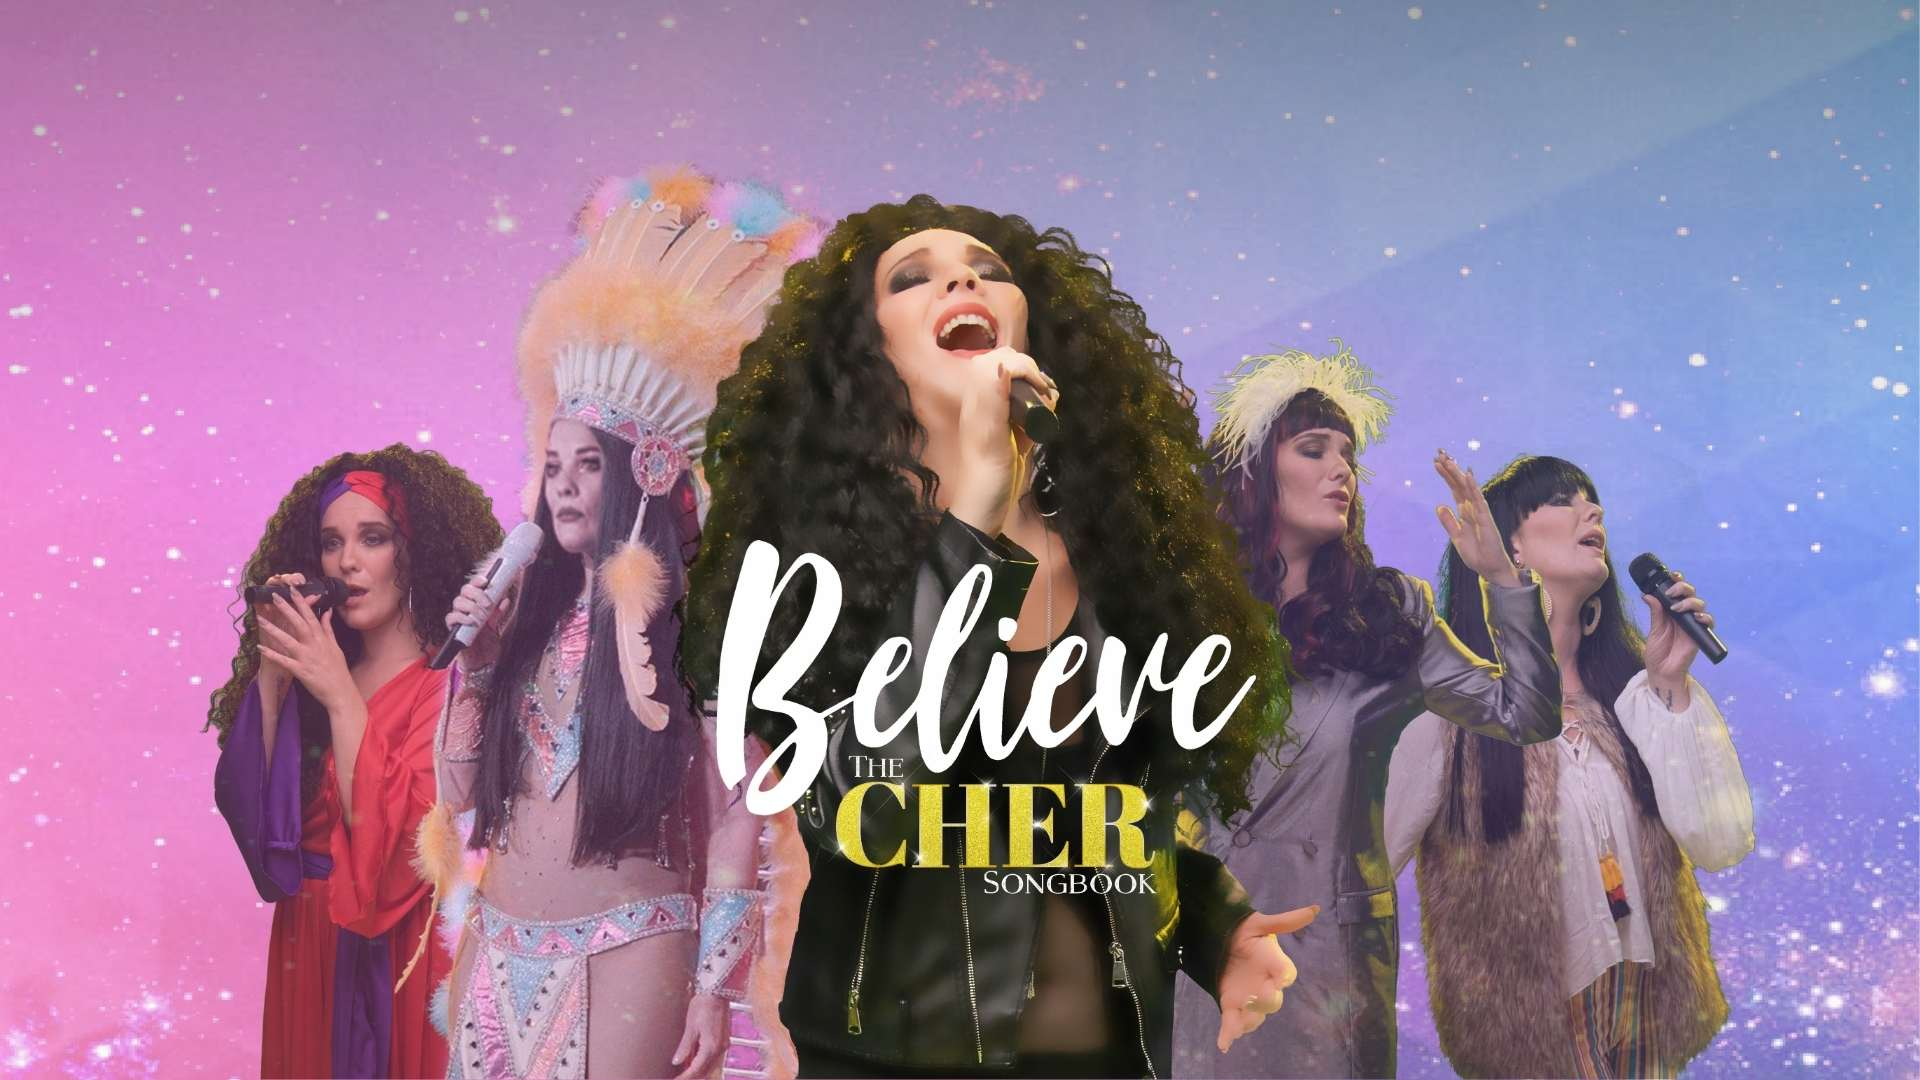 Believe - The Cher Songbook on 09/01/2022